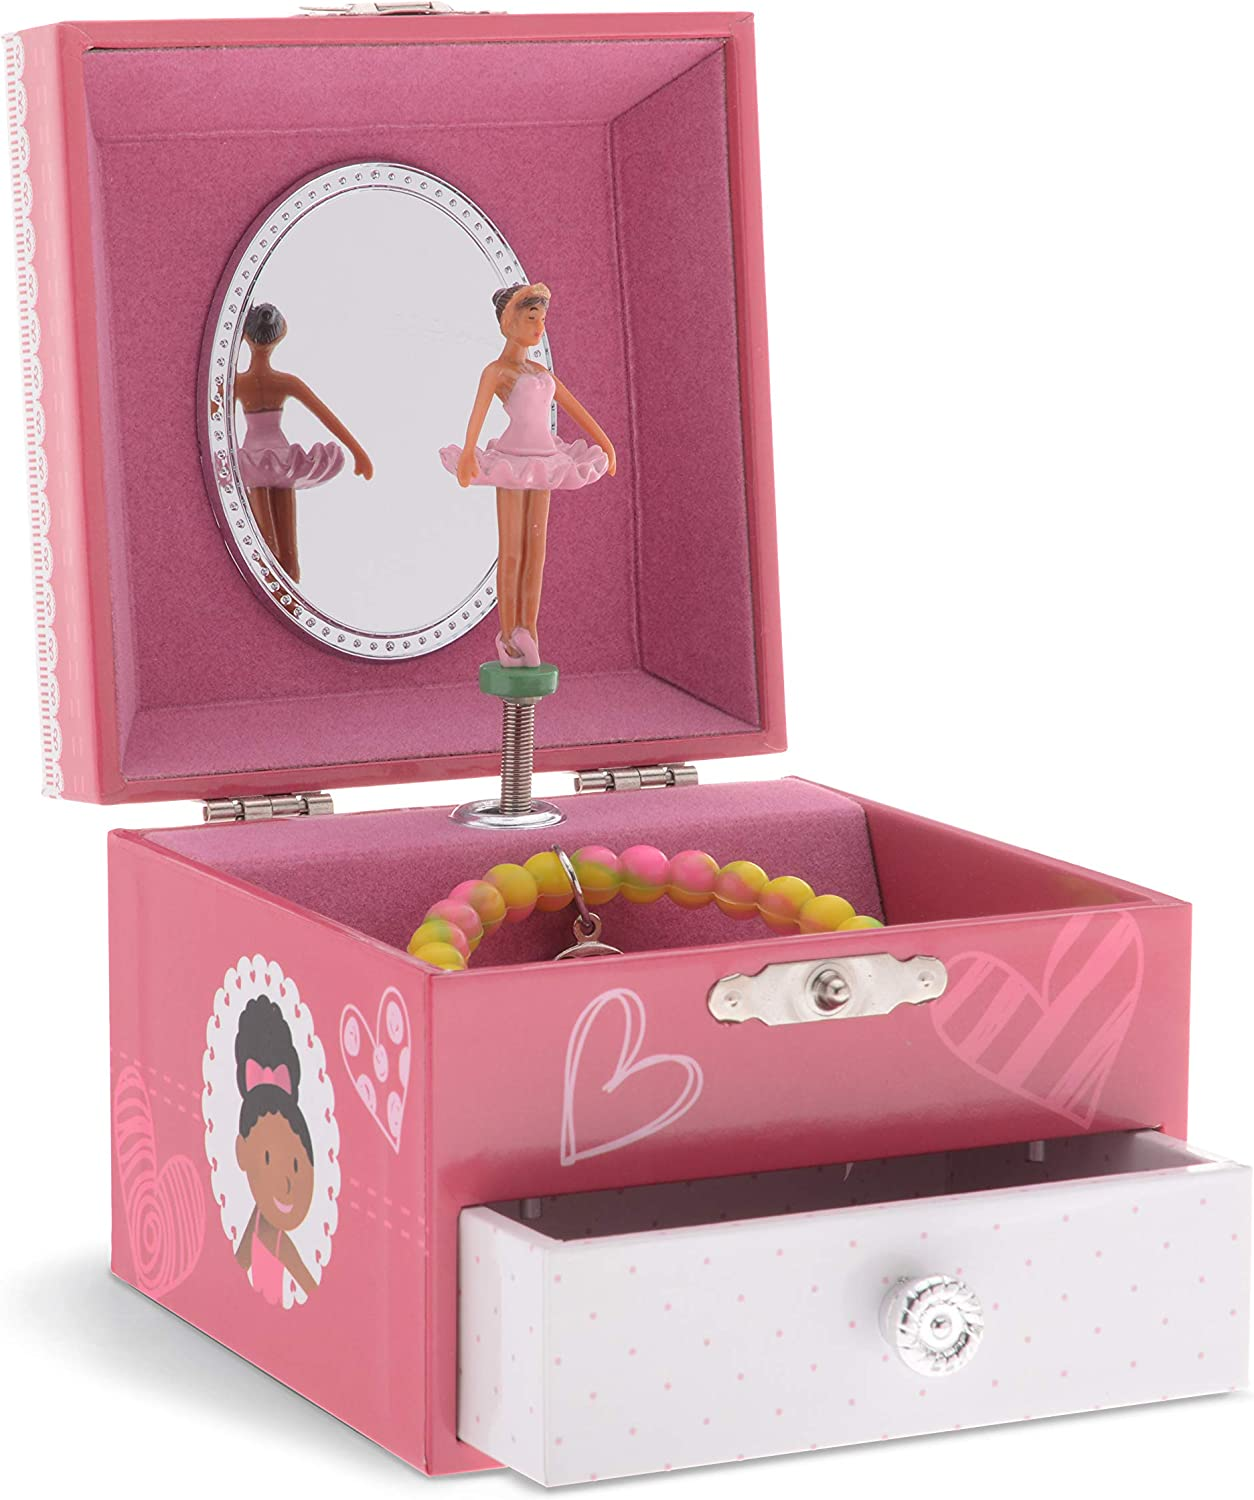 Classic Design Ballerina Mirror Swan Lake Tune Rose Pink JewelKeeper Girls Wooden Musical Jewelry Box Pullout Drawers